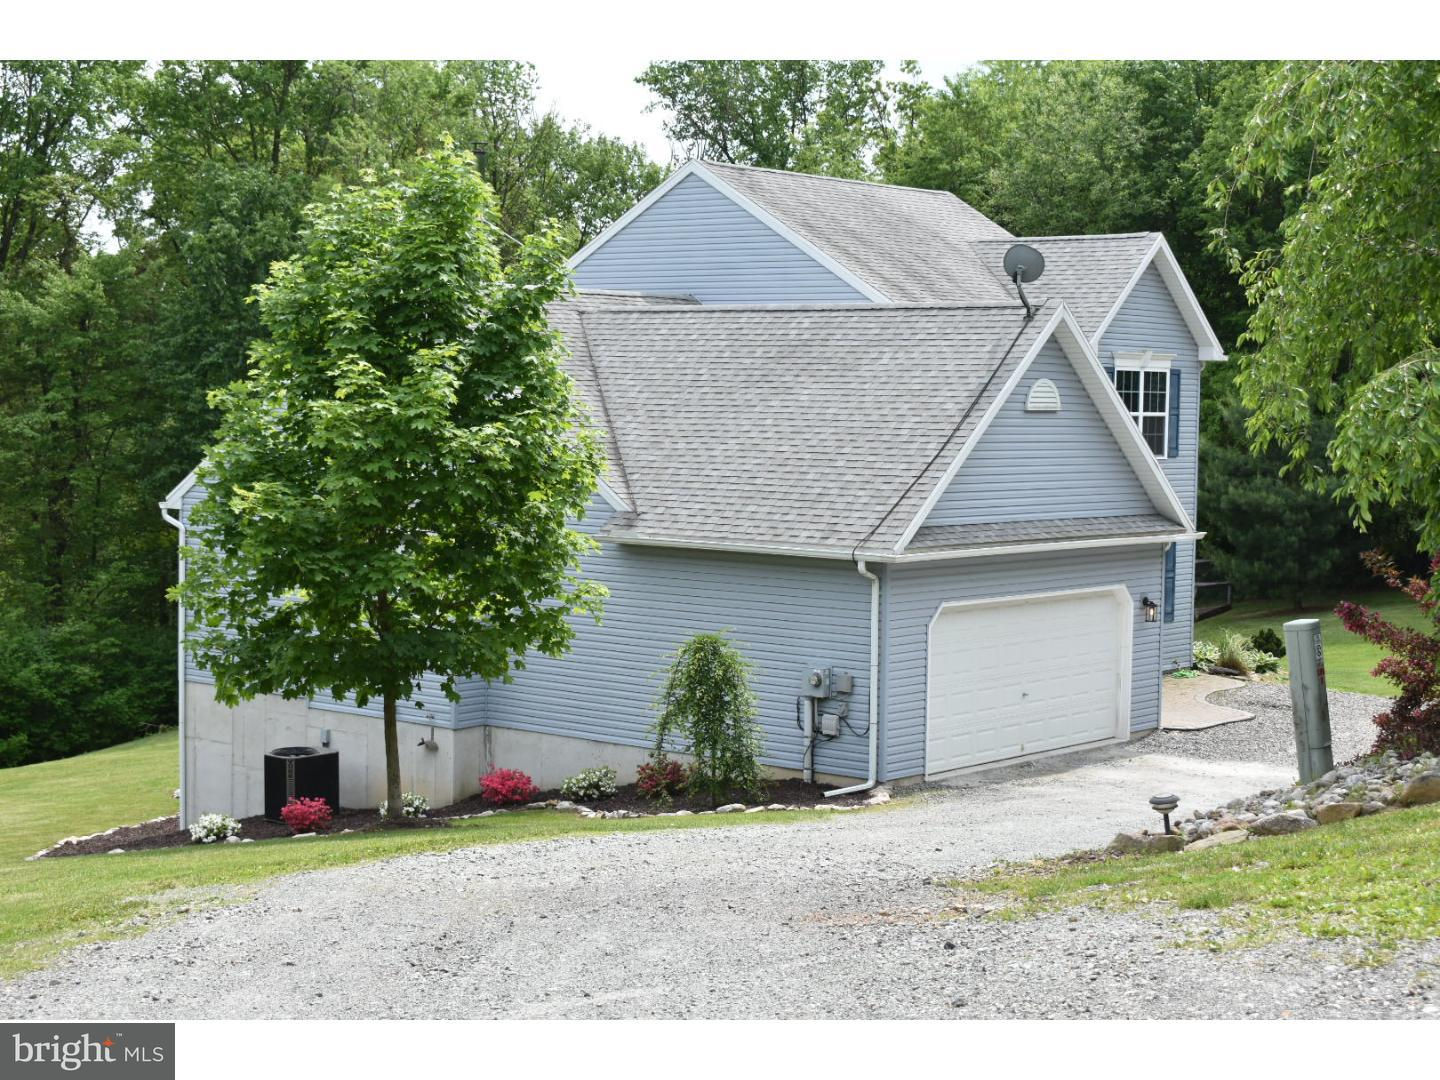 2014 EVERGREEN DR, TAMAQUA - Listed at $249,000,